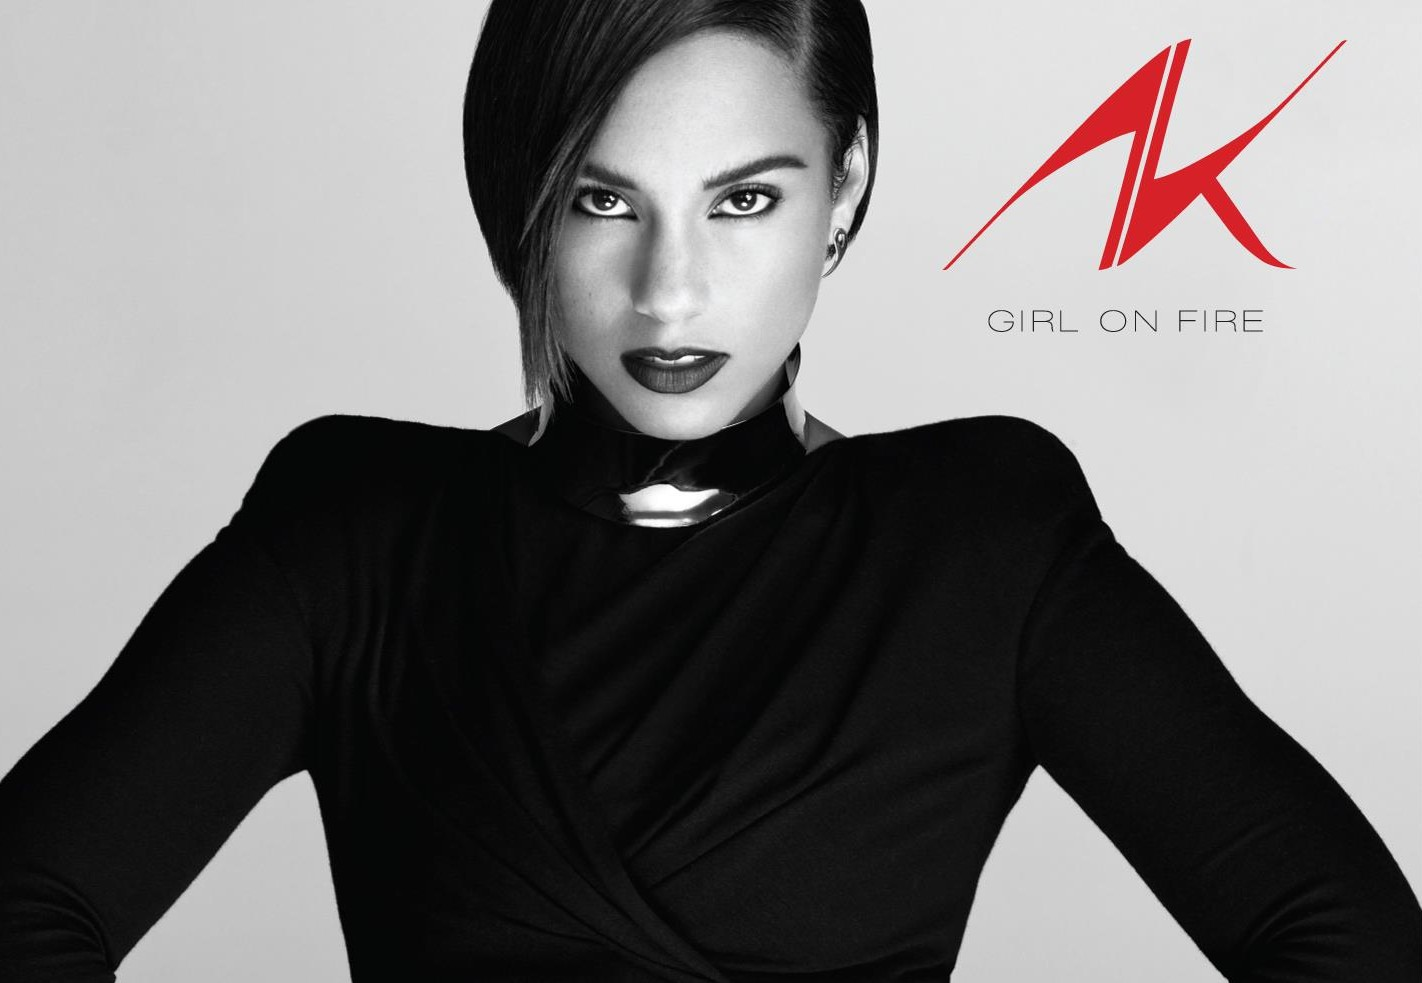 Alicia Keys: Girl On Fire CD